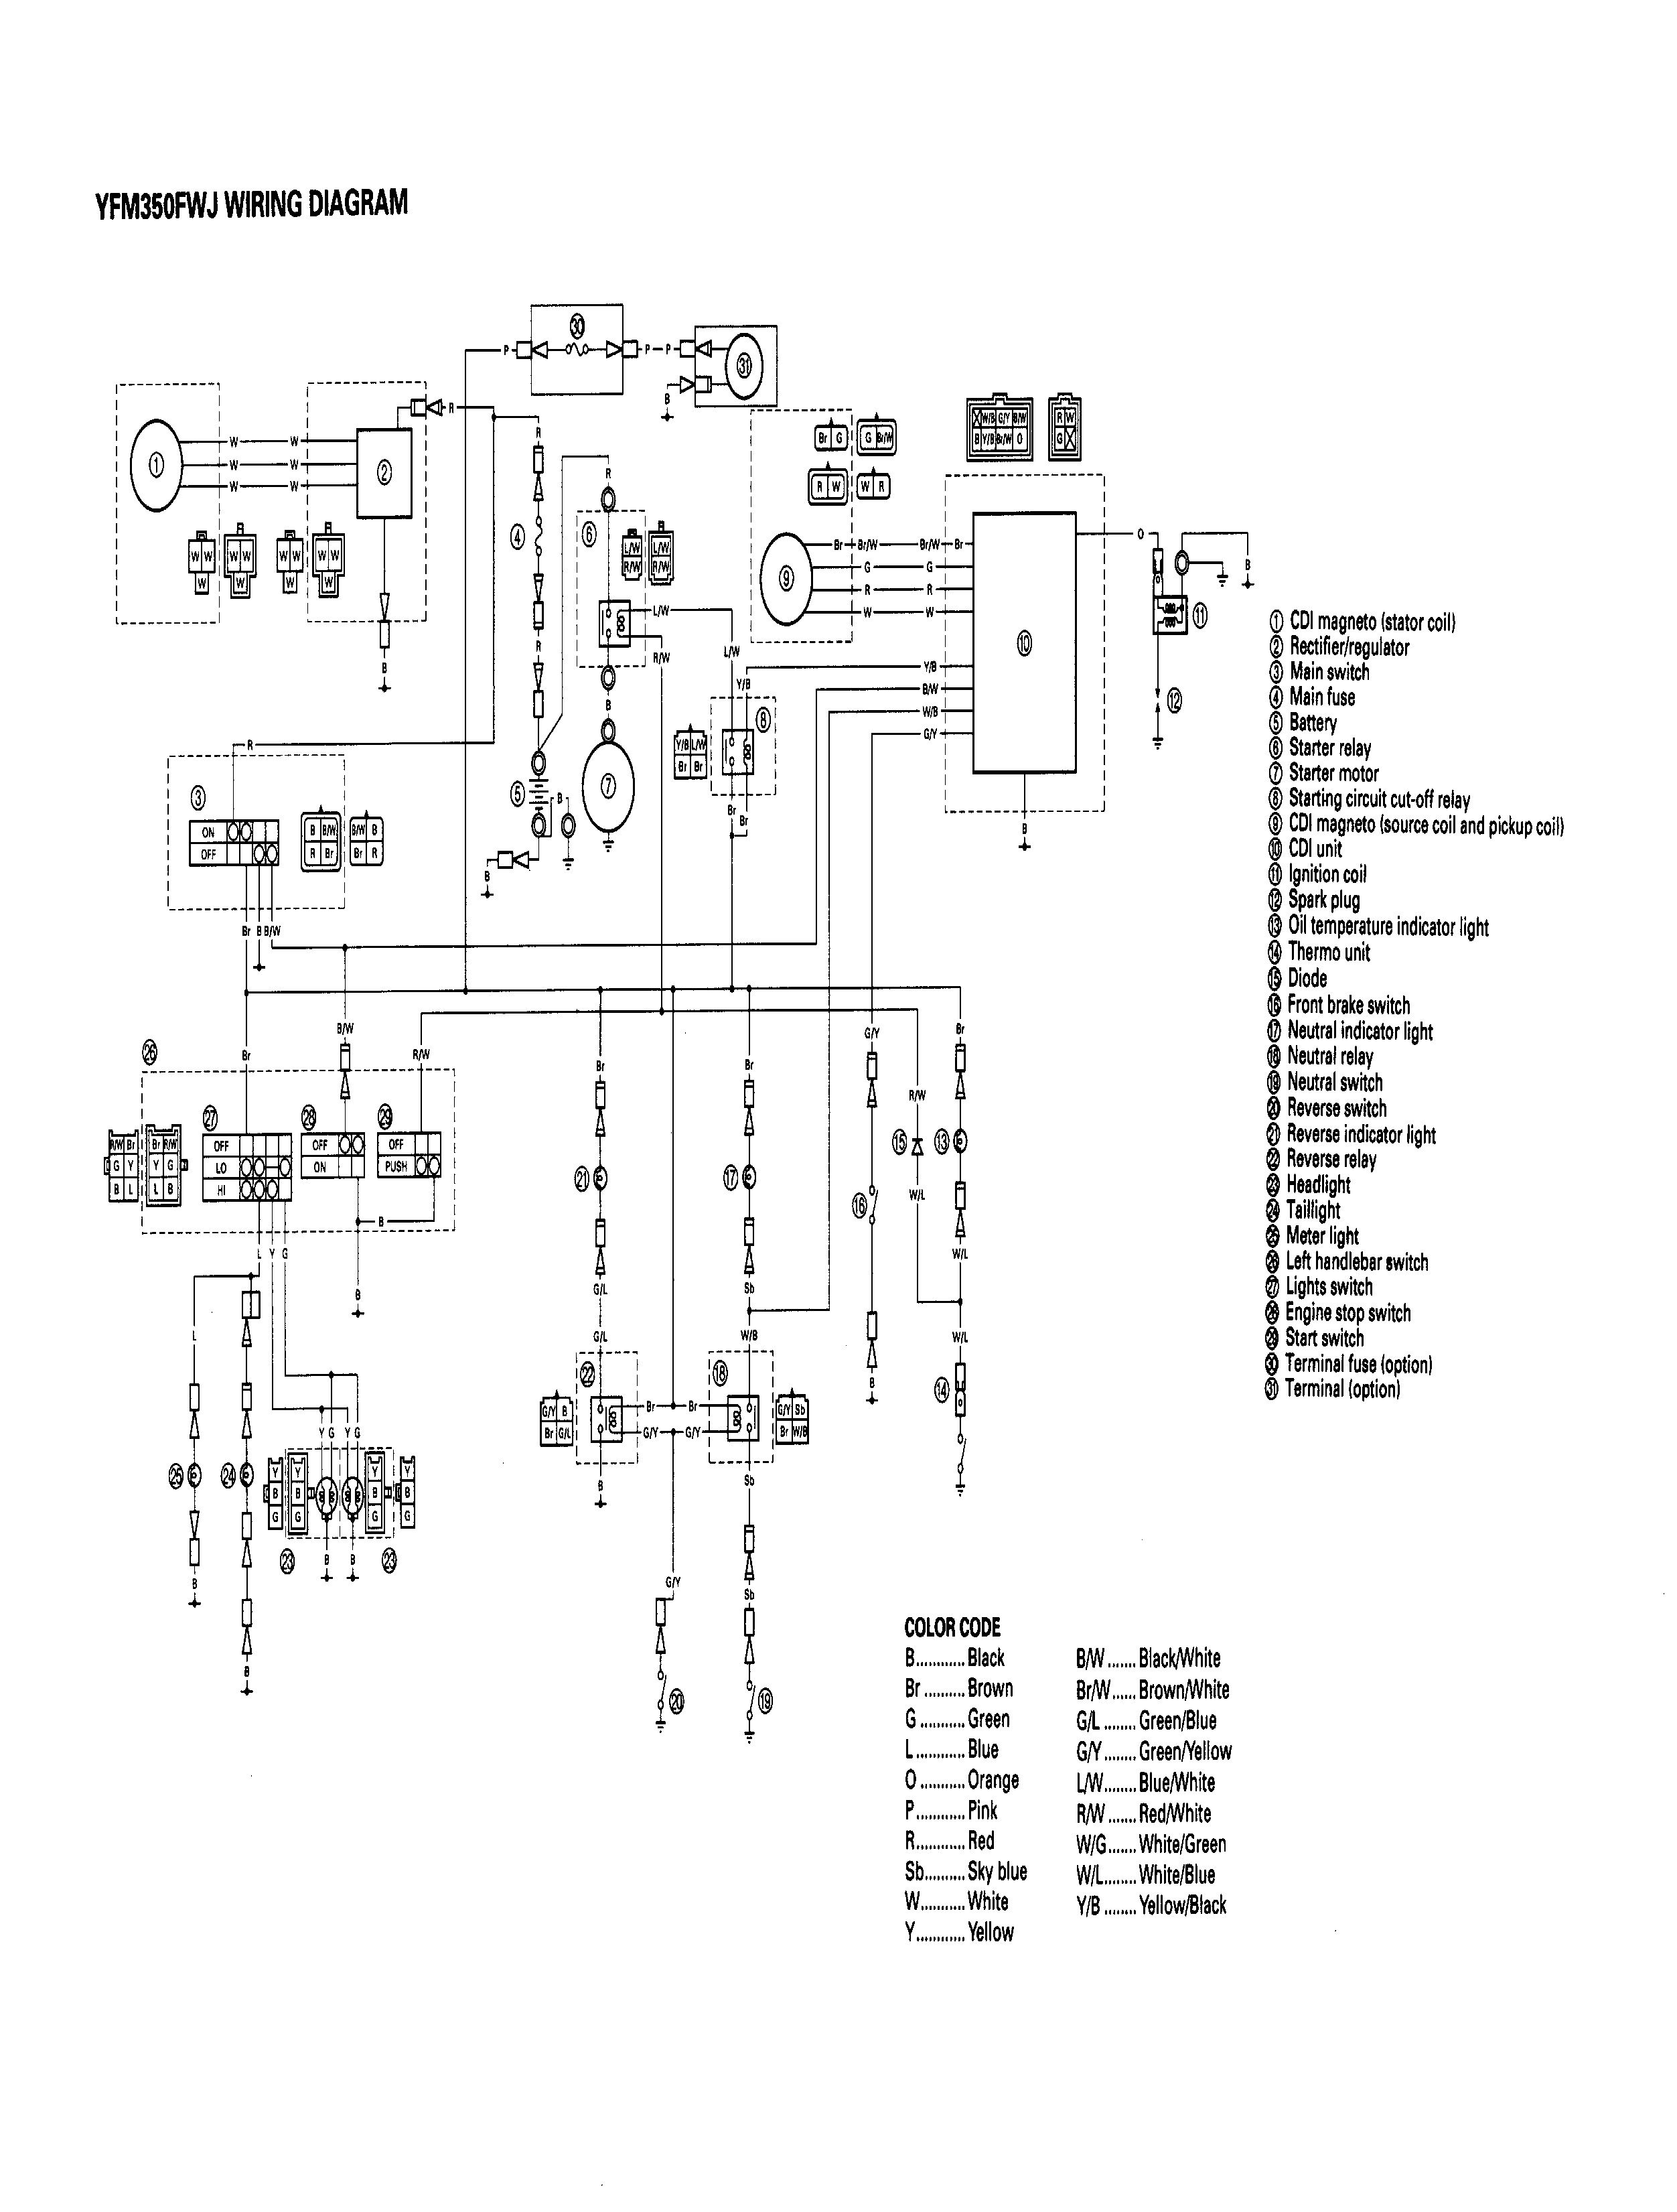 Yamaha Grizzly 660 Wiring Diagram | Free Wiring Diagram on